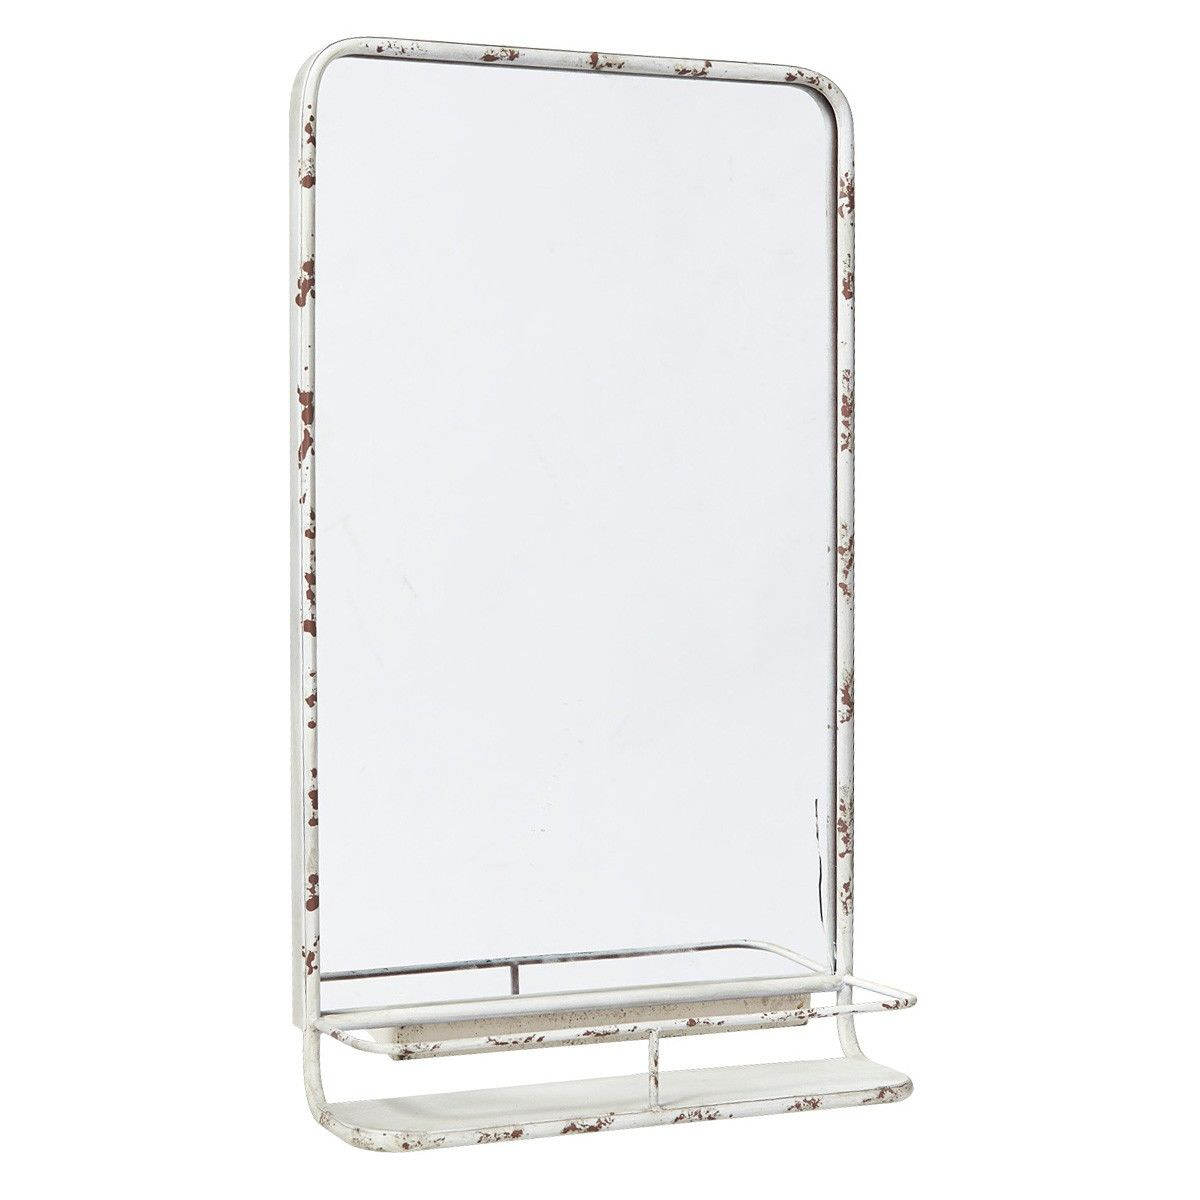 Hoover Industrial Iron Frame Leaner Wall Mirror with Shelf, 80cm, Rustic White